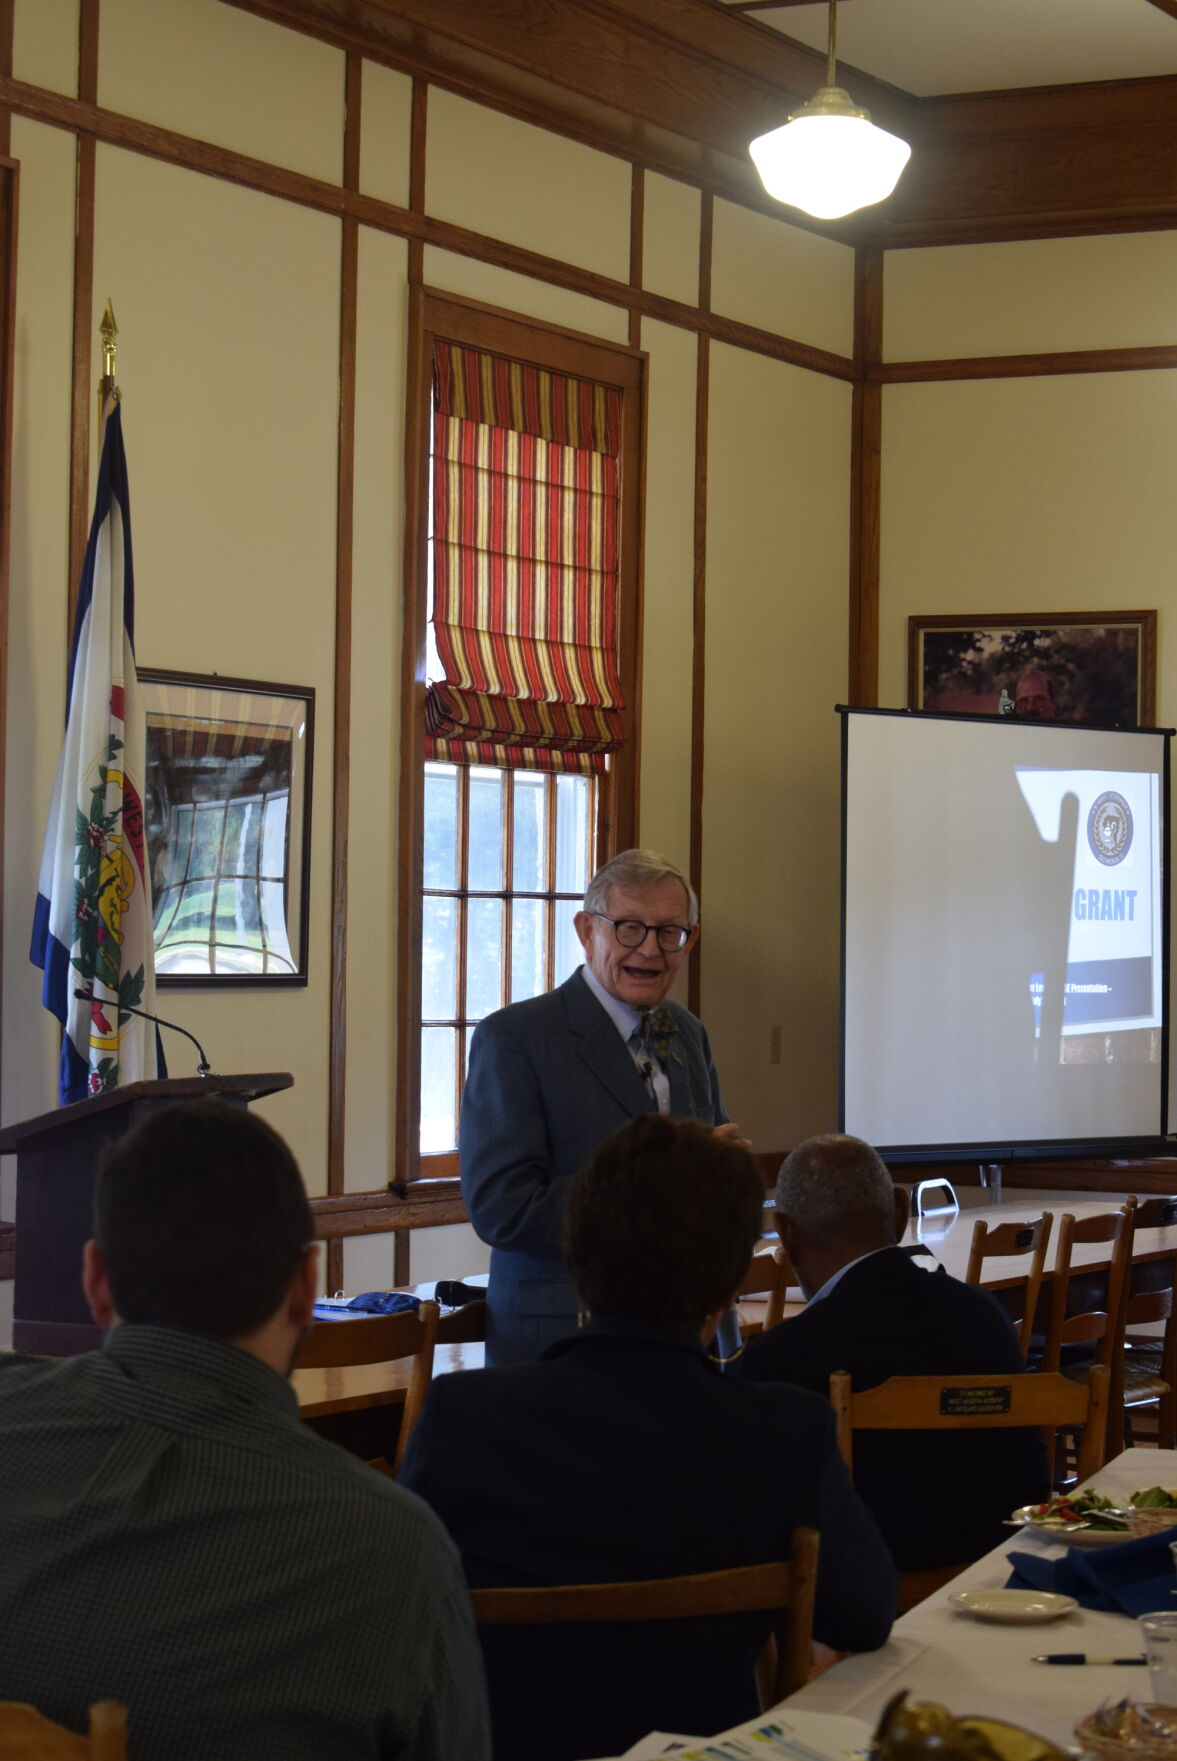 WVU President Dr. Gordon Gee meets with Lewis County education stakeholders